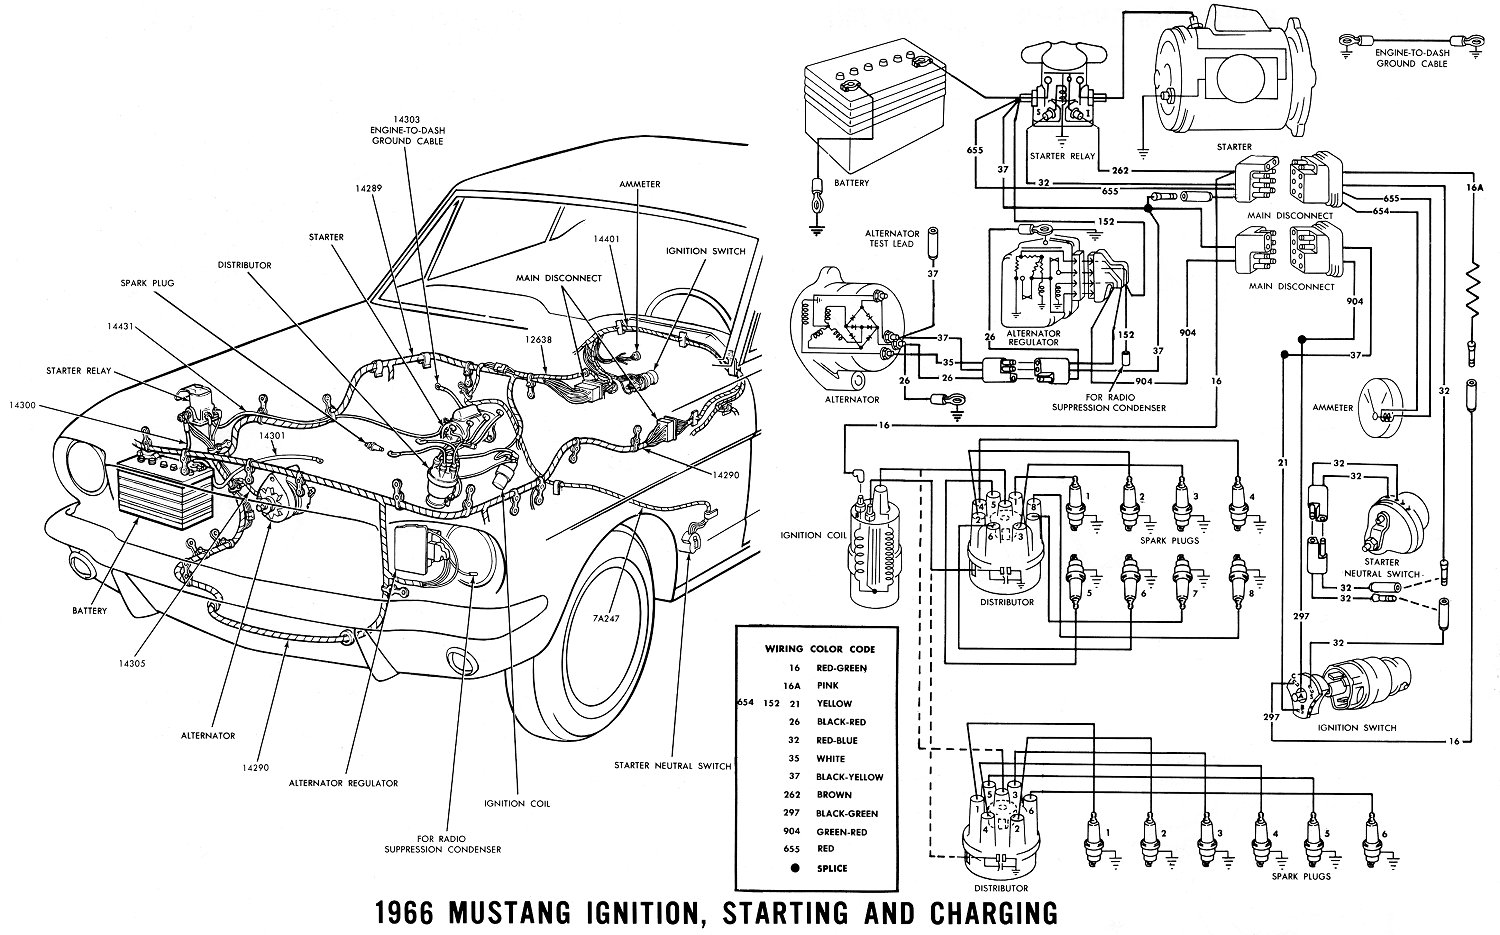 1966 Ford Mustang Fuse Box Diagram Trusted Schematics Crown Victoria Panel 2005 Engine Bay Opinions About 2001